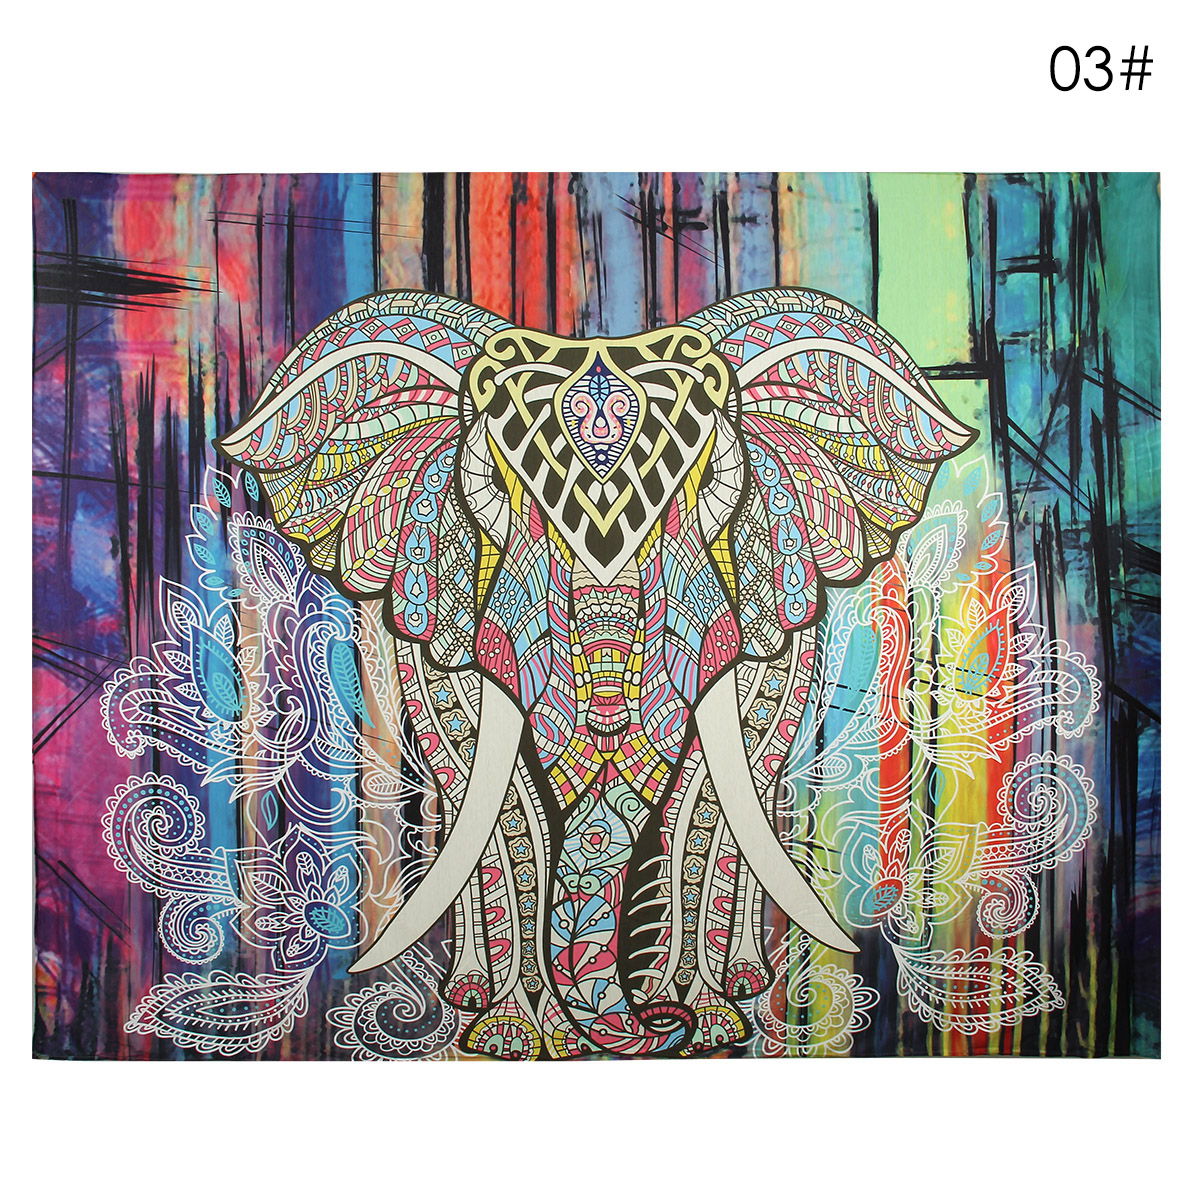 Elephant Mandala Tapestry Throw Towel Hippie Tapestry Floral Printed Home Decor Wall Tapestries Bedspread 210*150CM 11